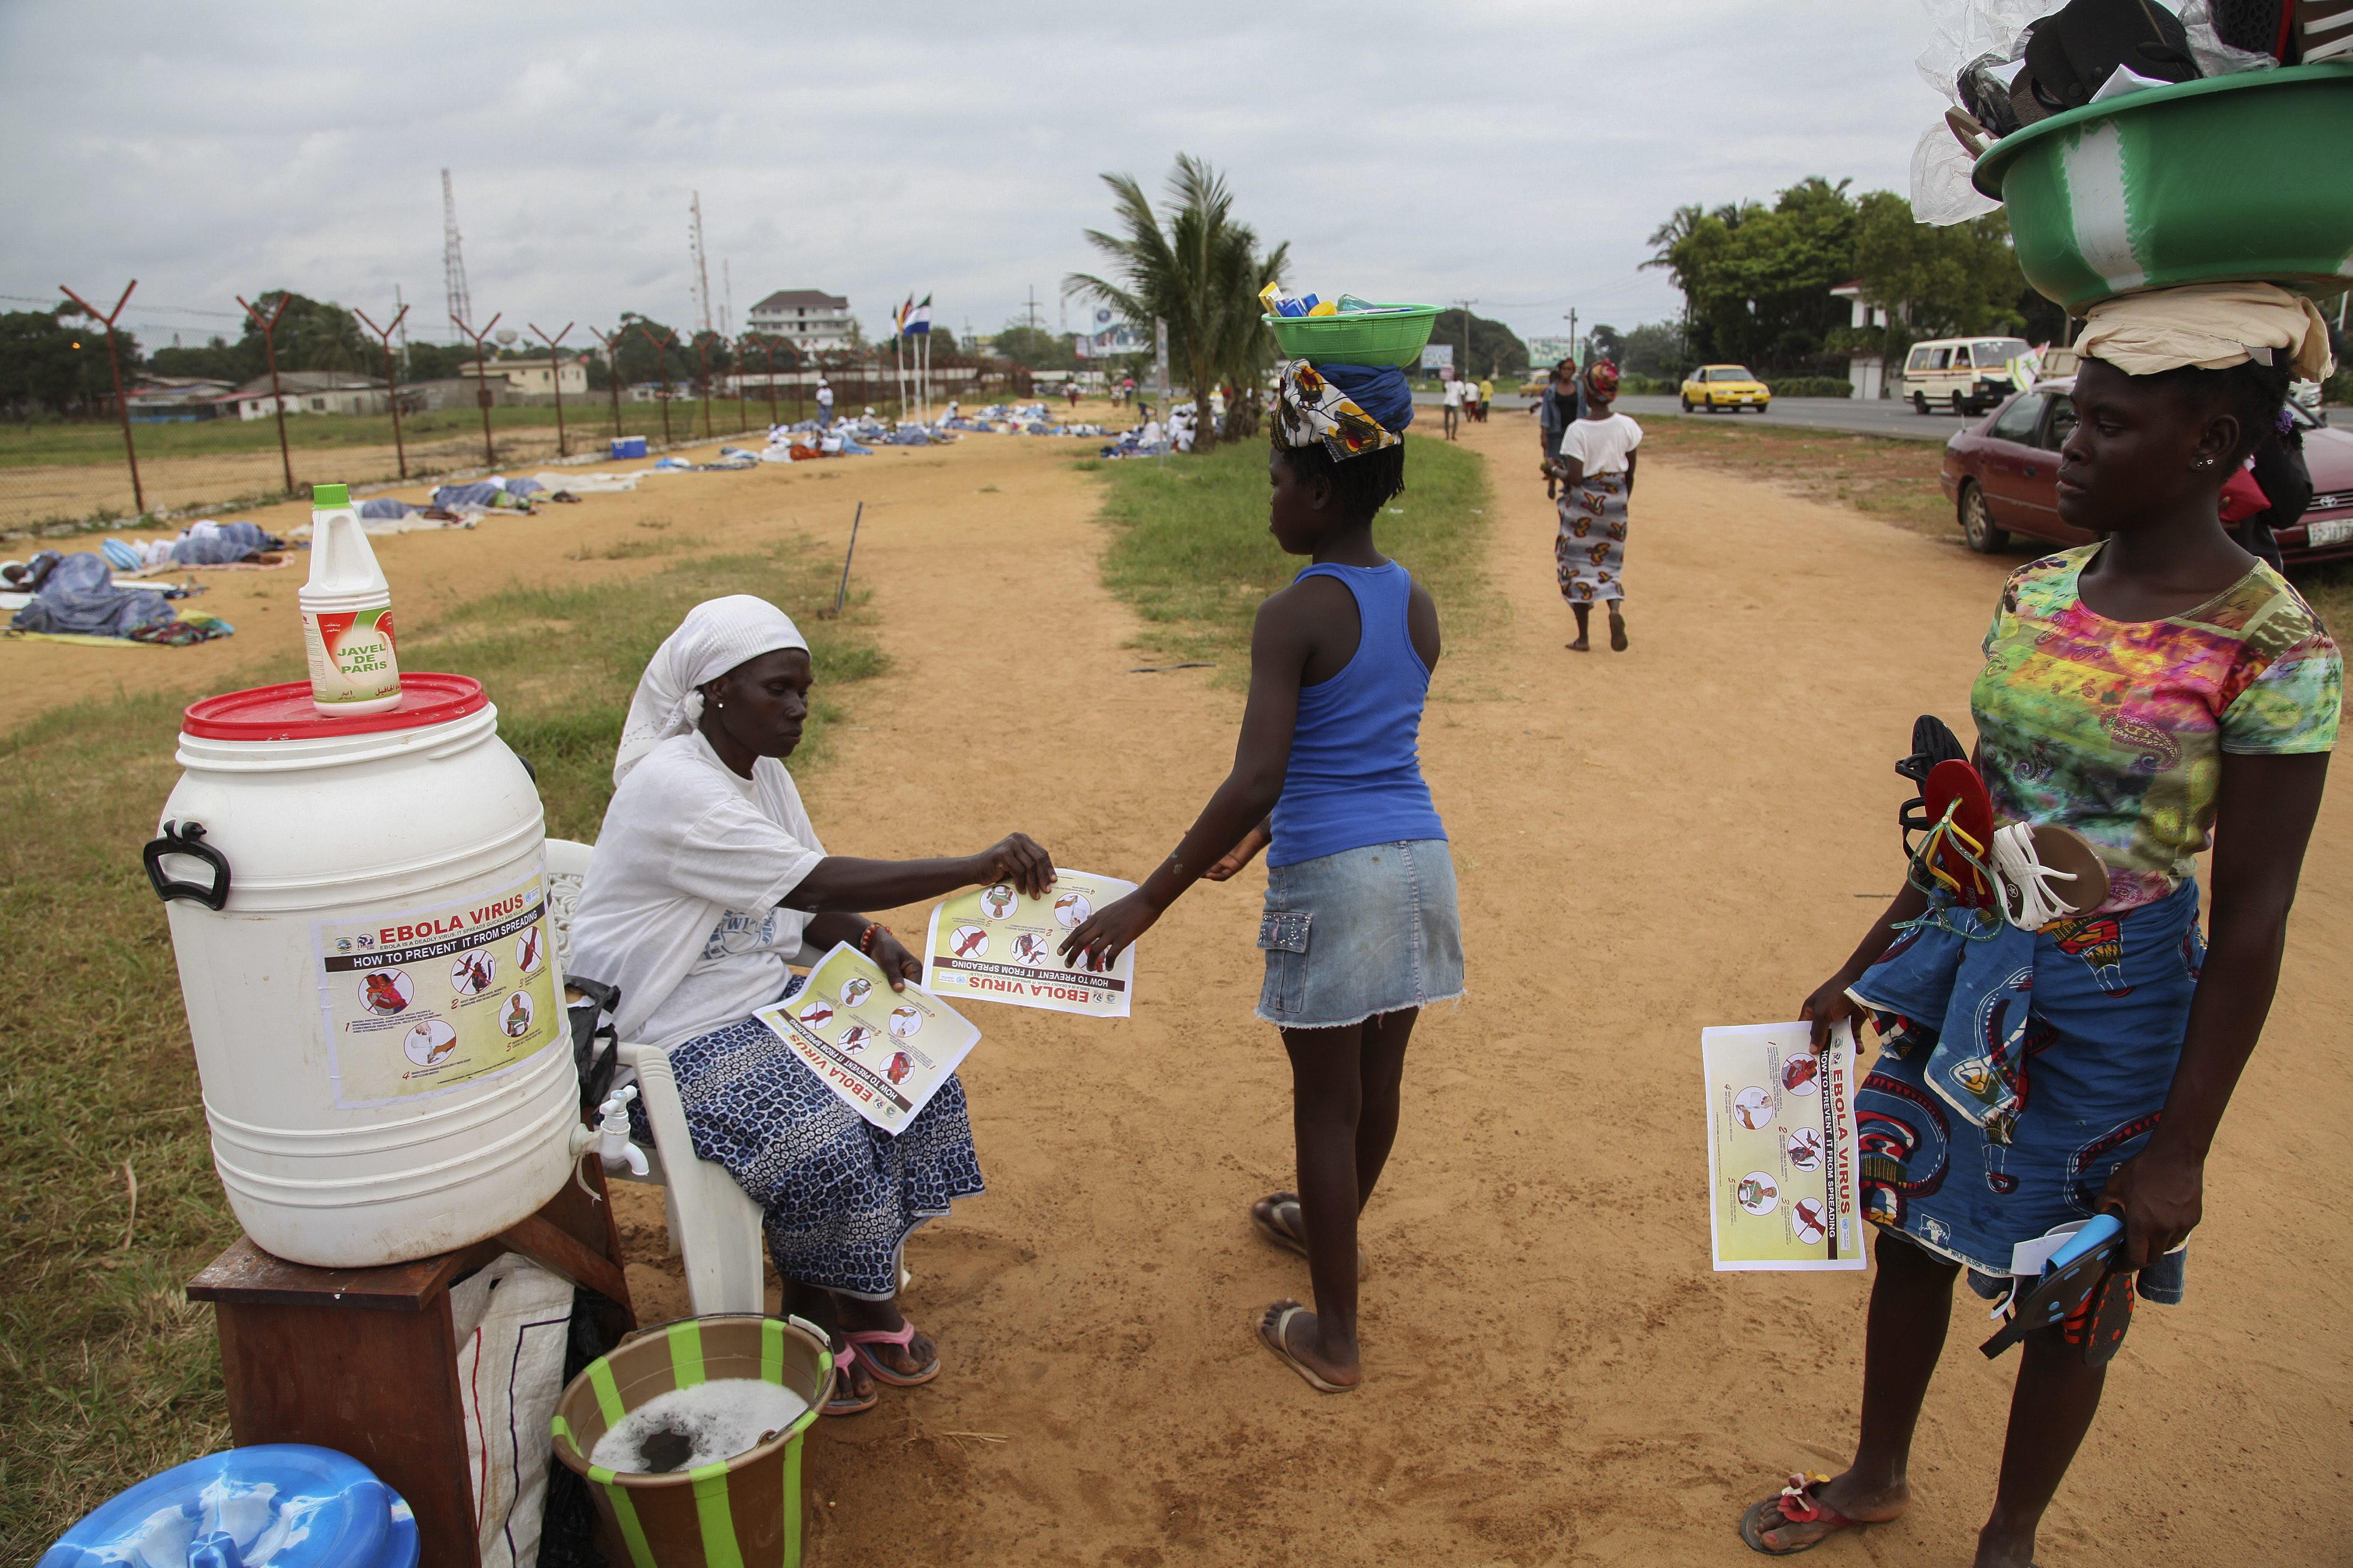 epaselect epa04350775 A Liberian woman from the Women in Peace Building Network (WIPNET) distributes Ebola sensitization information to girls at the WIPNET prayer ground in Monrovia, Liberia 12 August 2014. According to